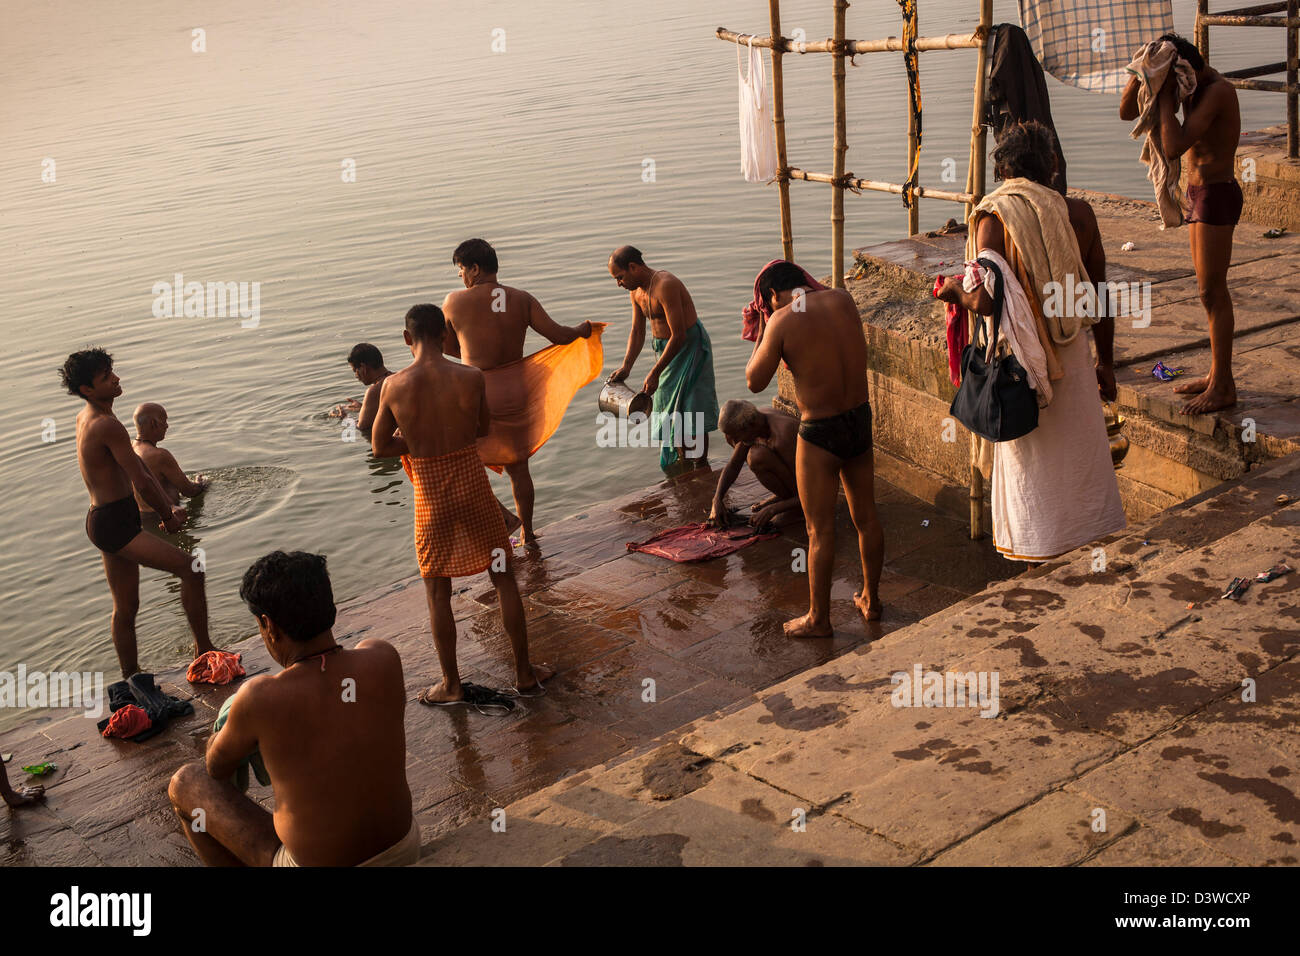 5673abd1717 Indian men bathing in the Ganges river, Varanasi, India Stock Photo ...